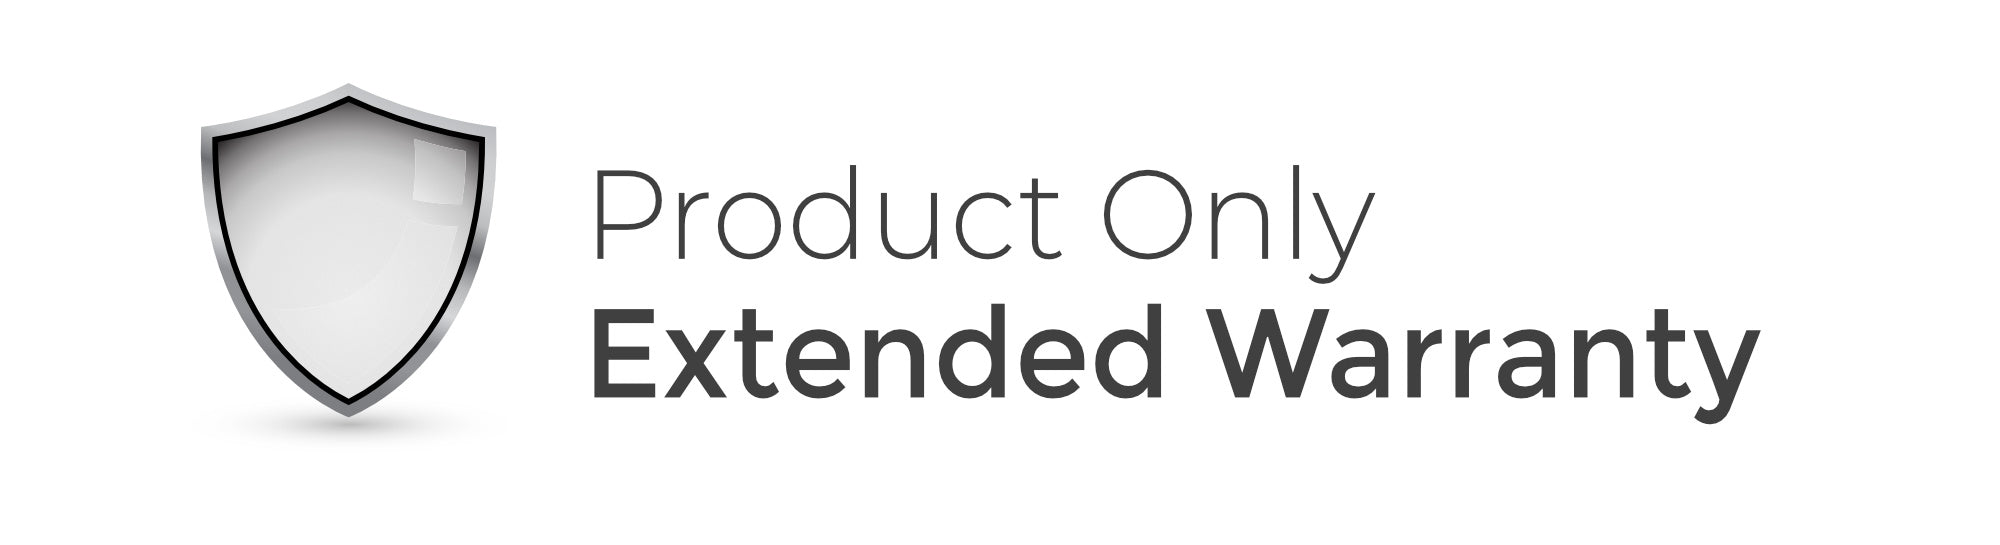 Product Only - Extended Warranty (ML Solo+) - Commtel Shop